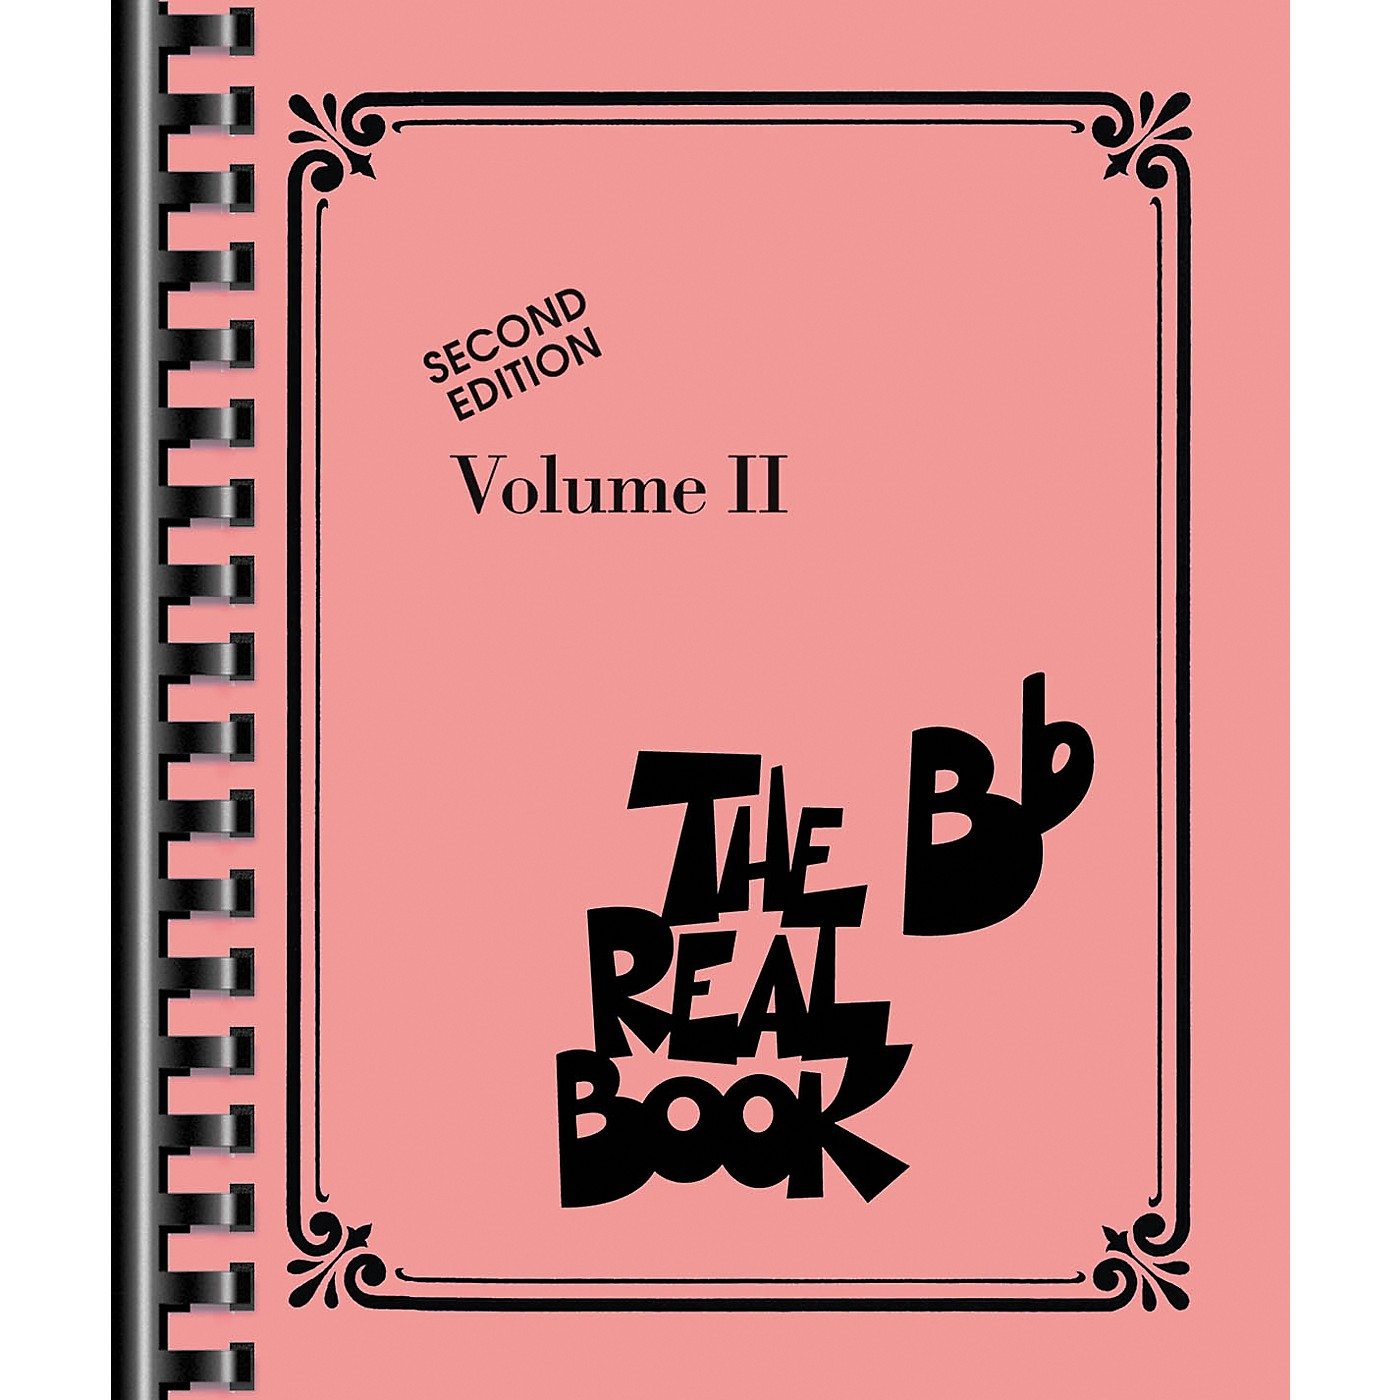 Hal Leonard The Real Book Bb Volume II - Second Edition thumbnail